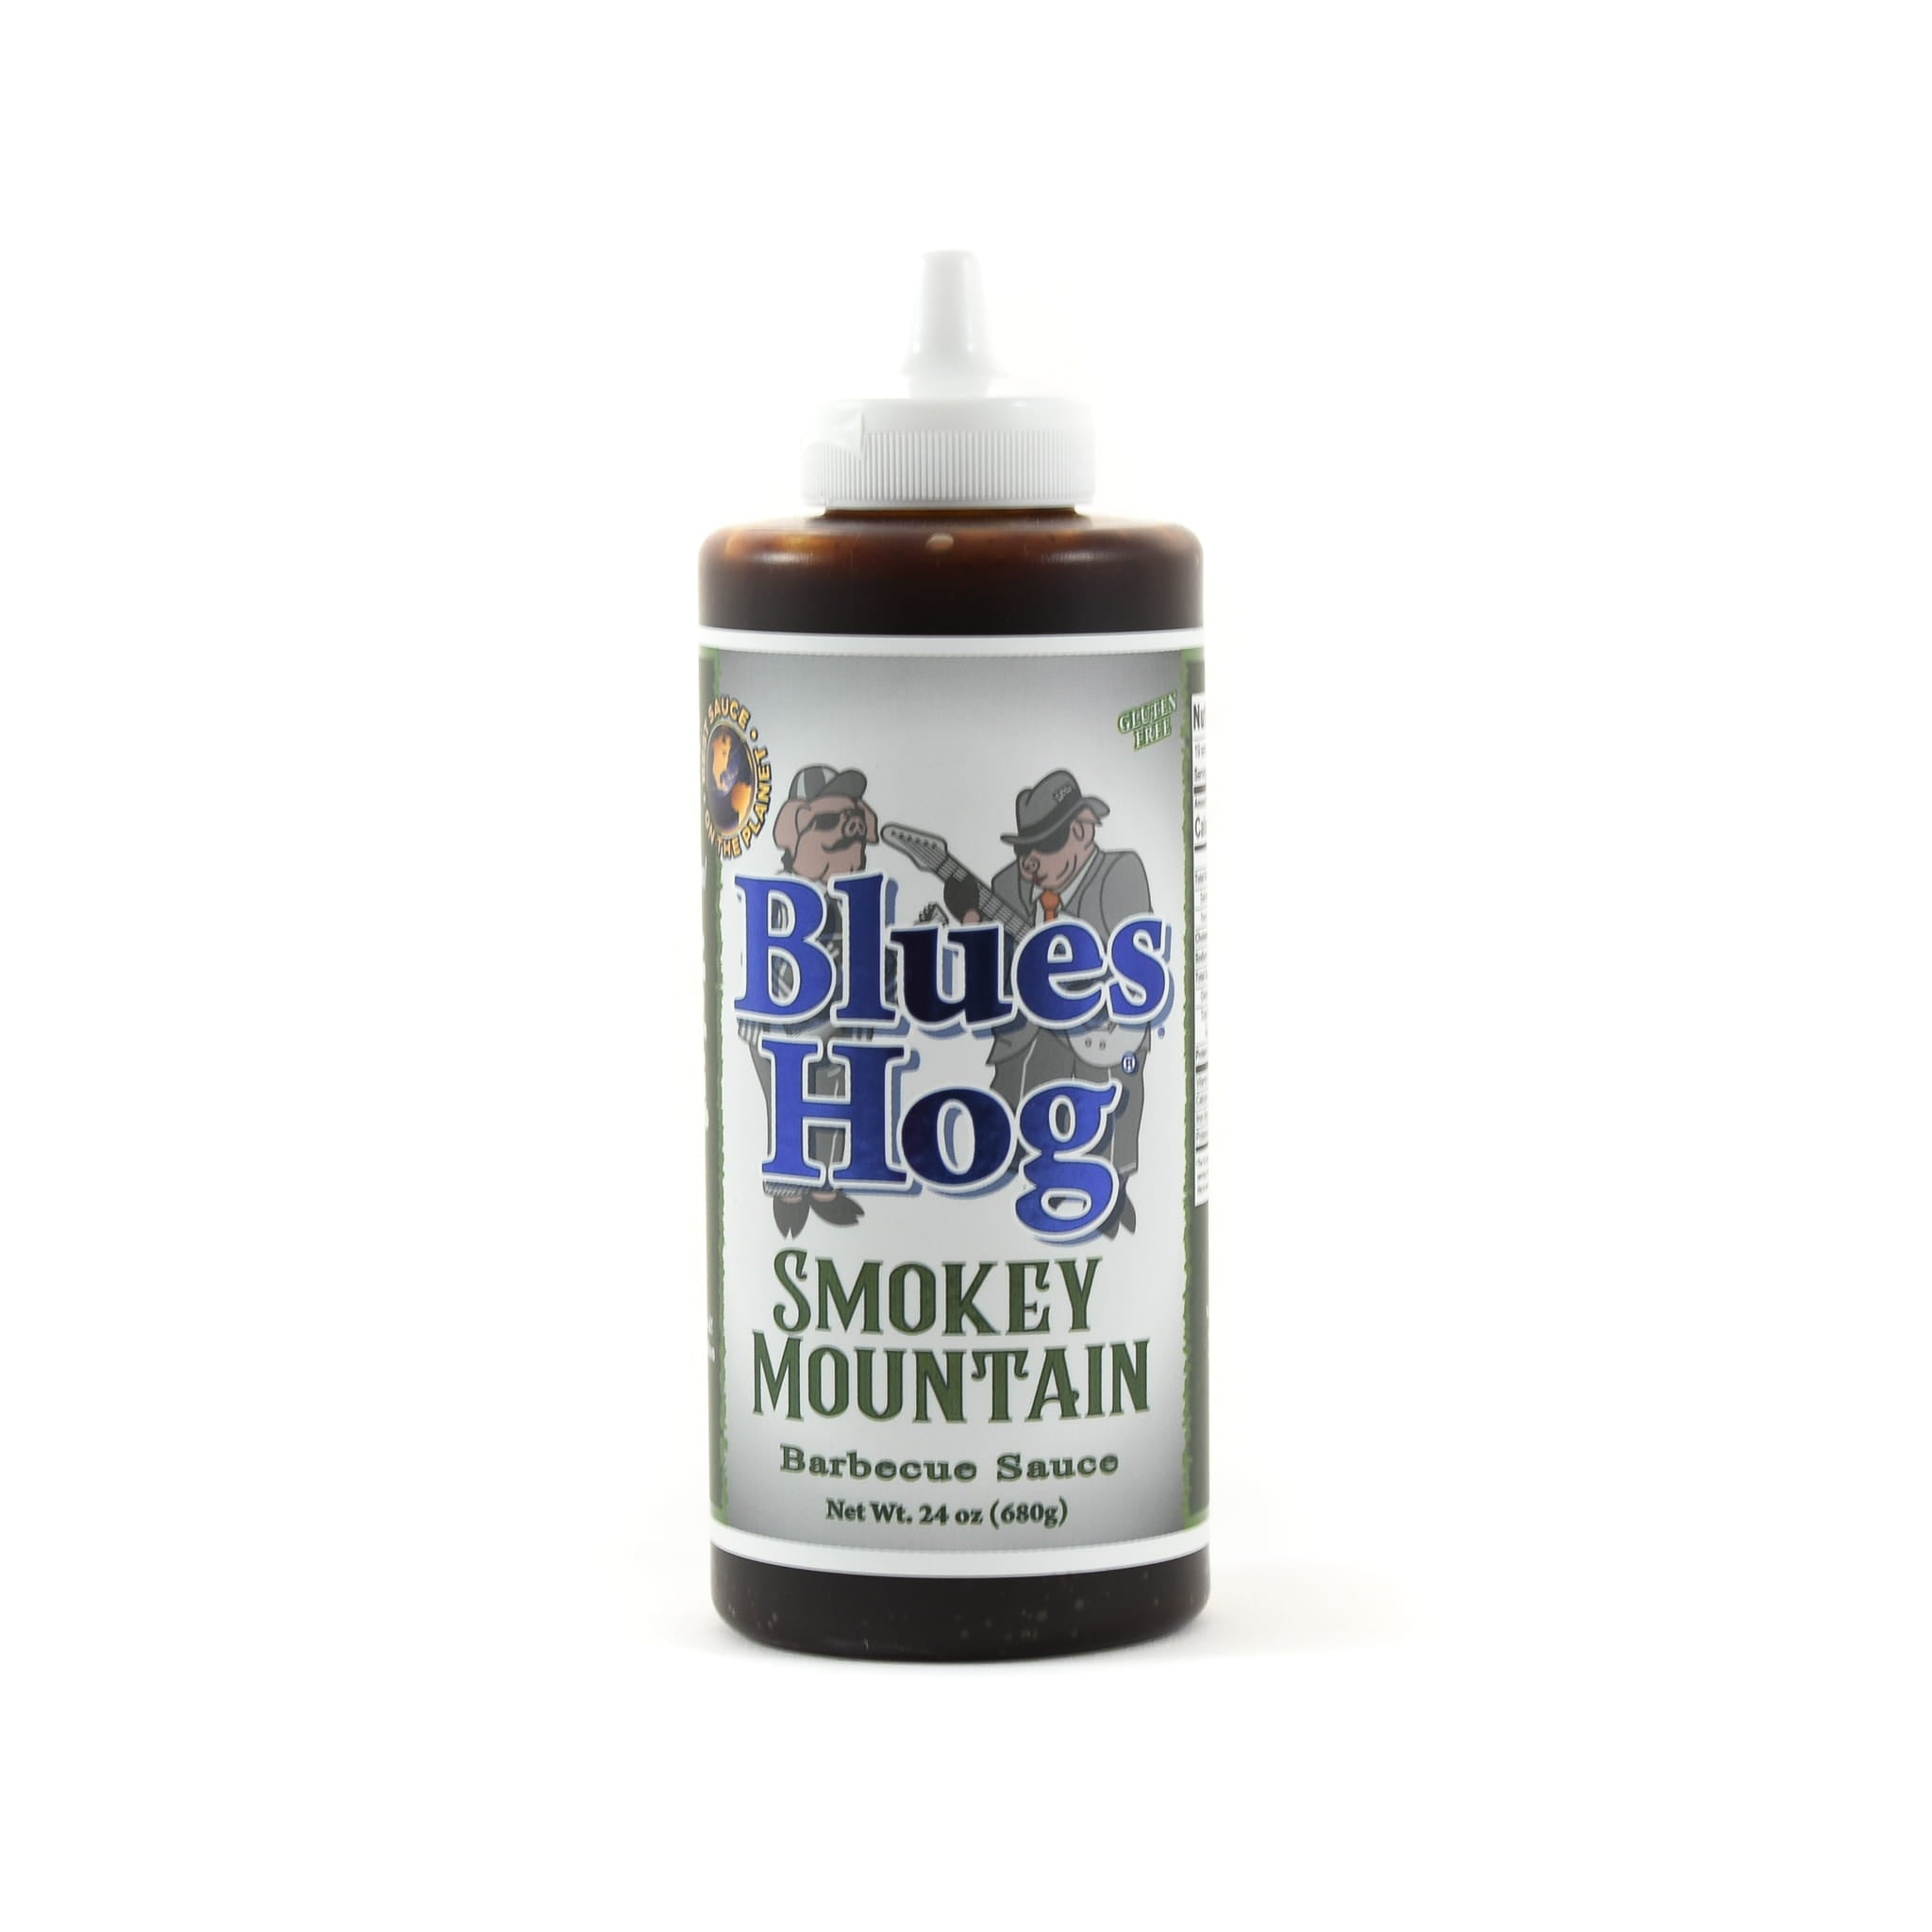 Blues Hog Smokey Mountain BBQ Sauce 680g